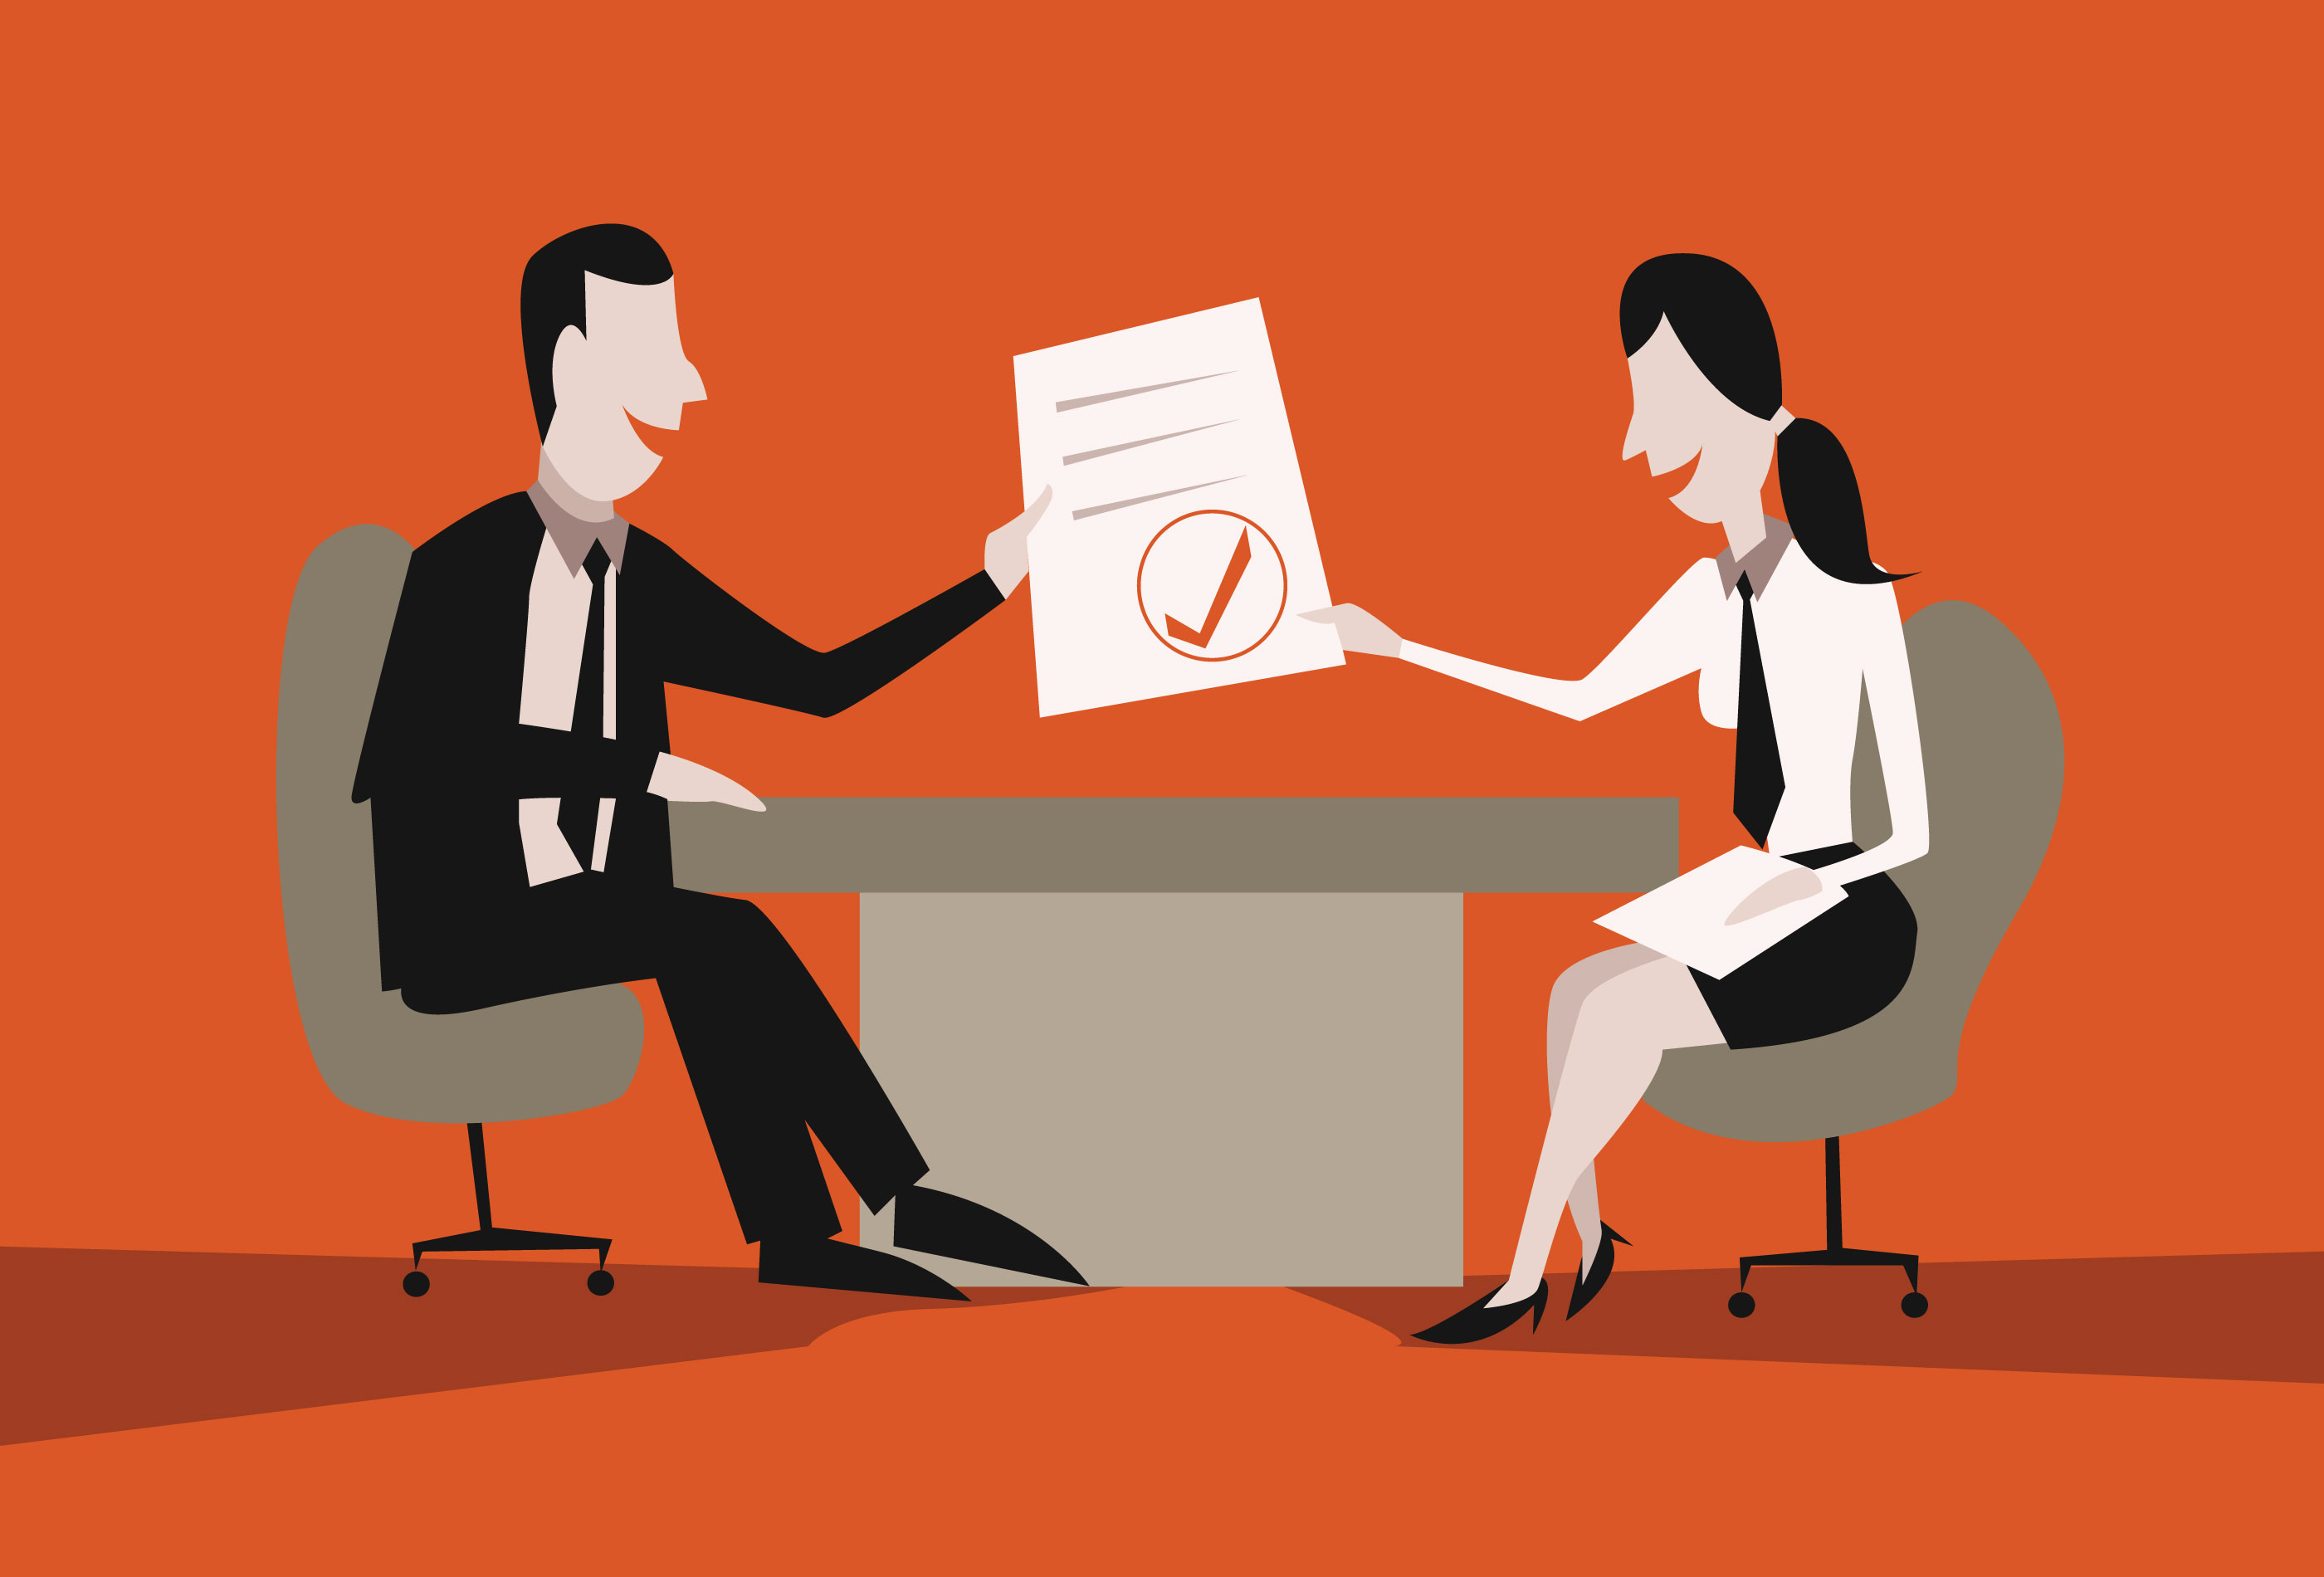 10 top tips to improve your interview performance interview tips on interview performance